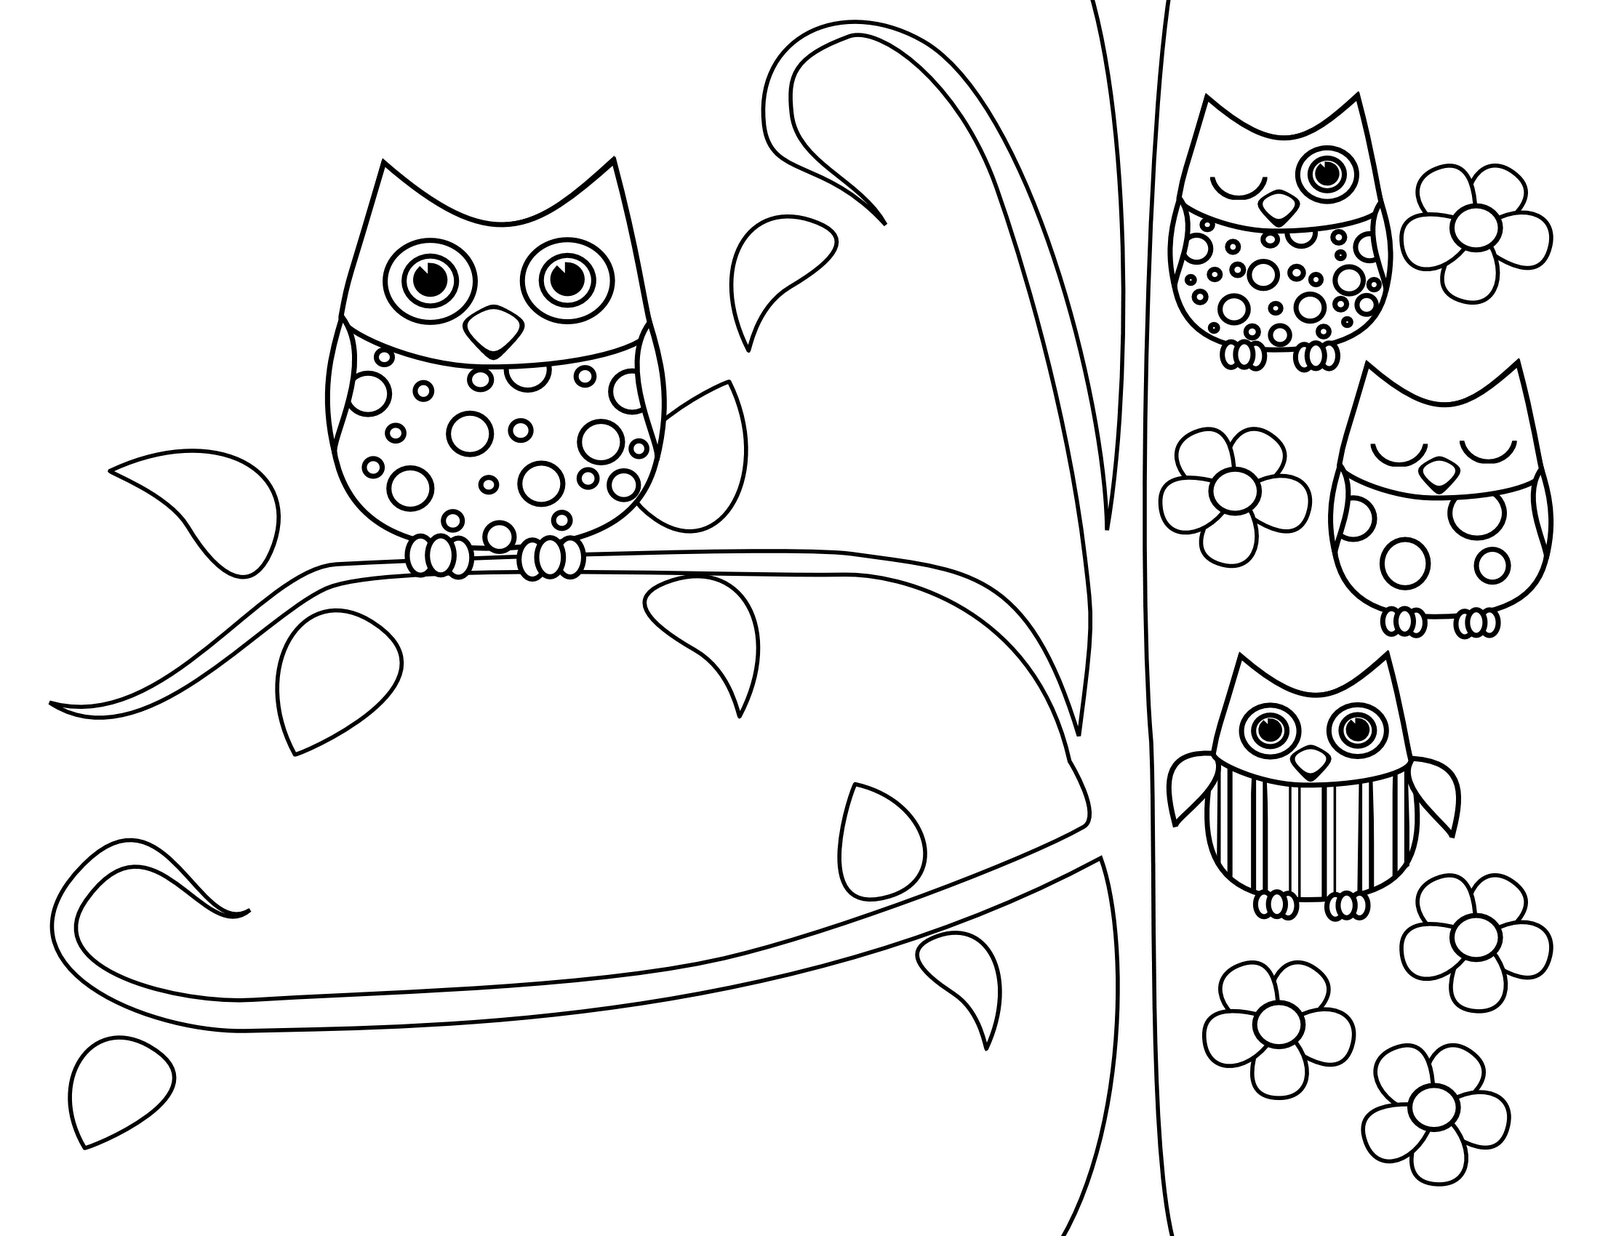 Owlet coloring #3, Download drawings